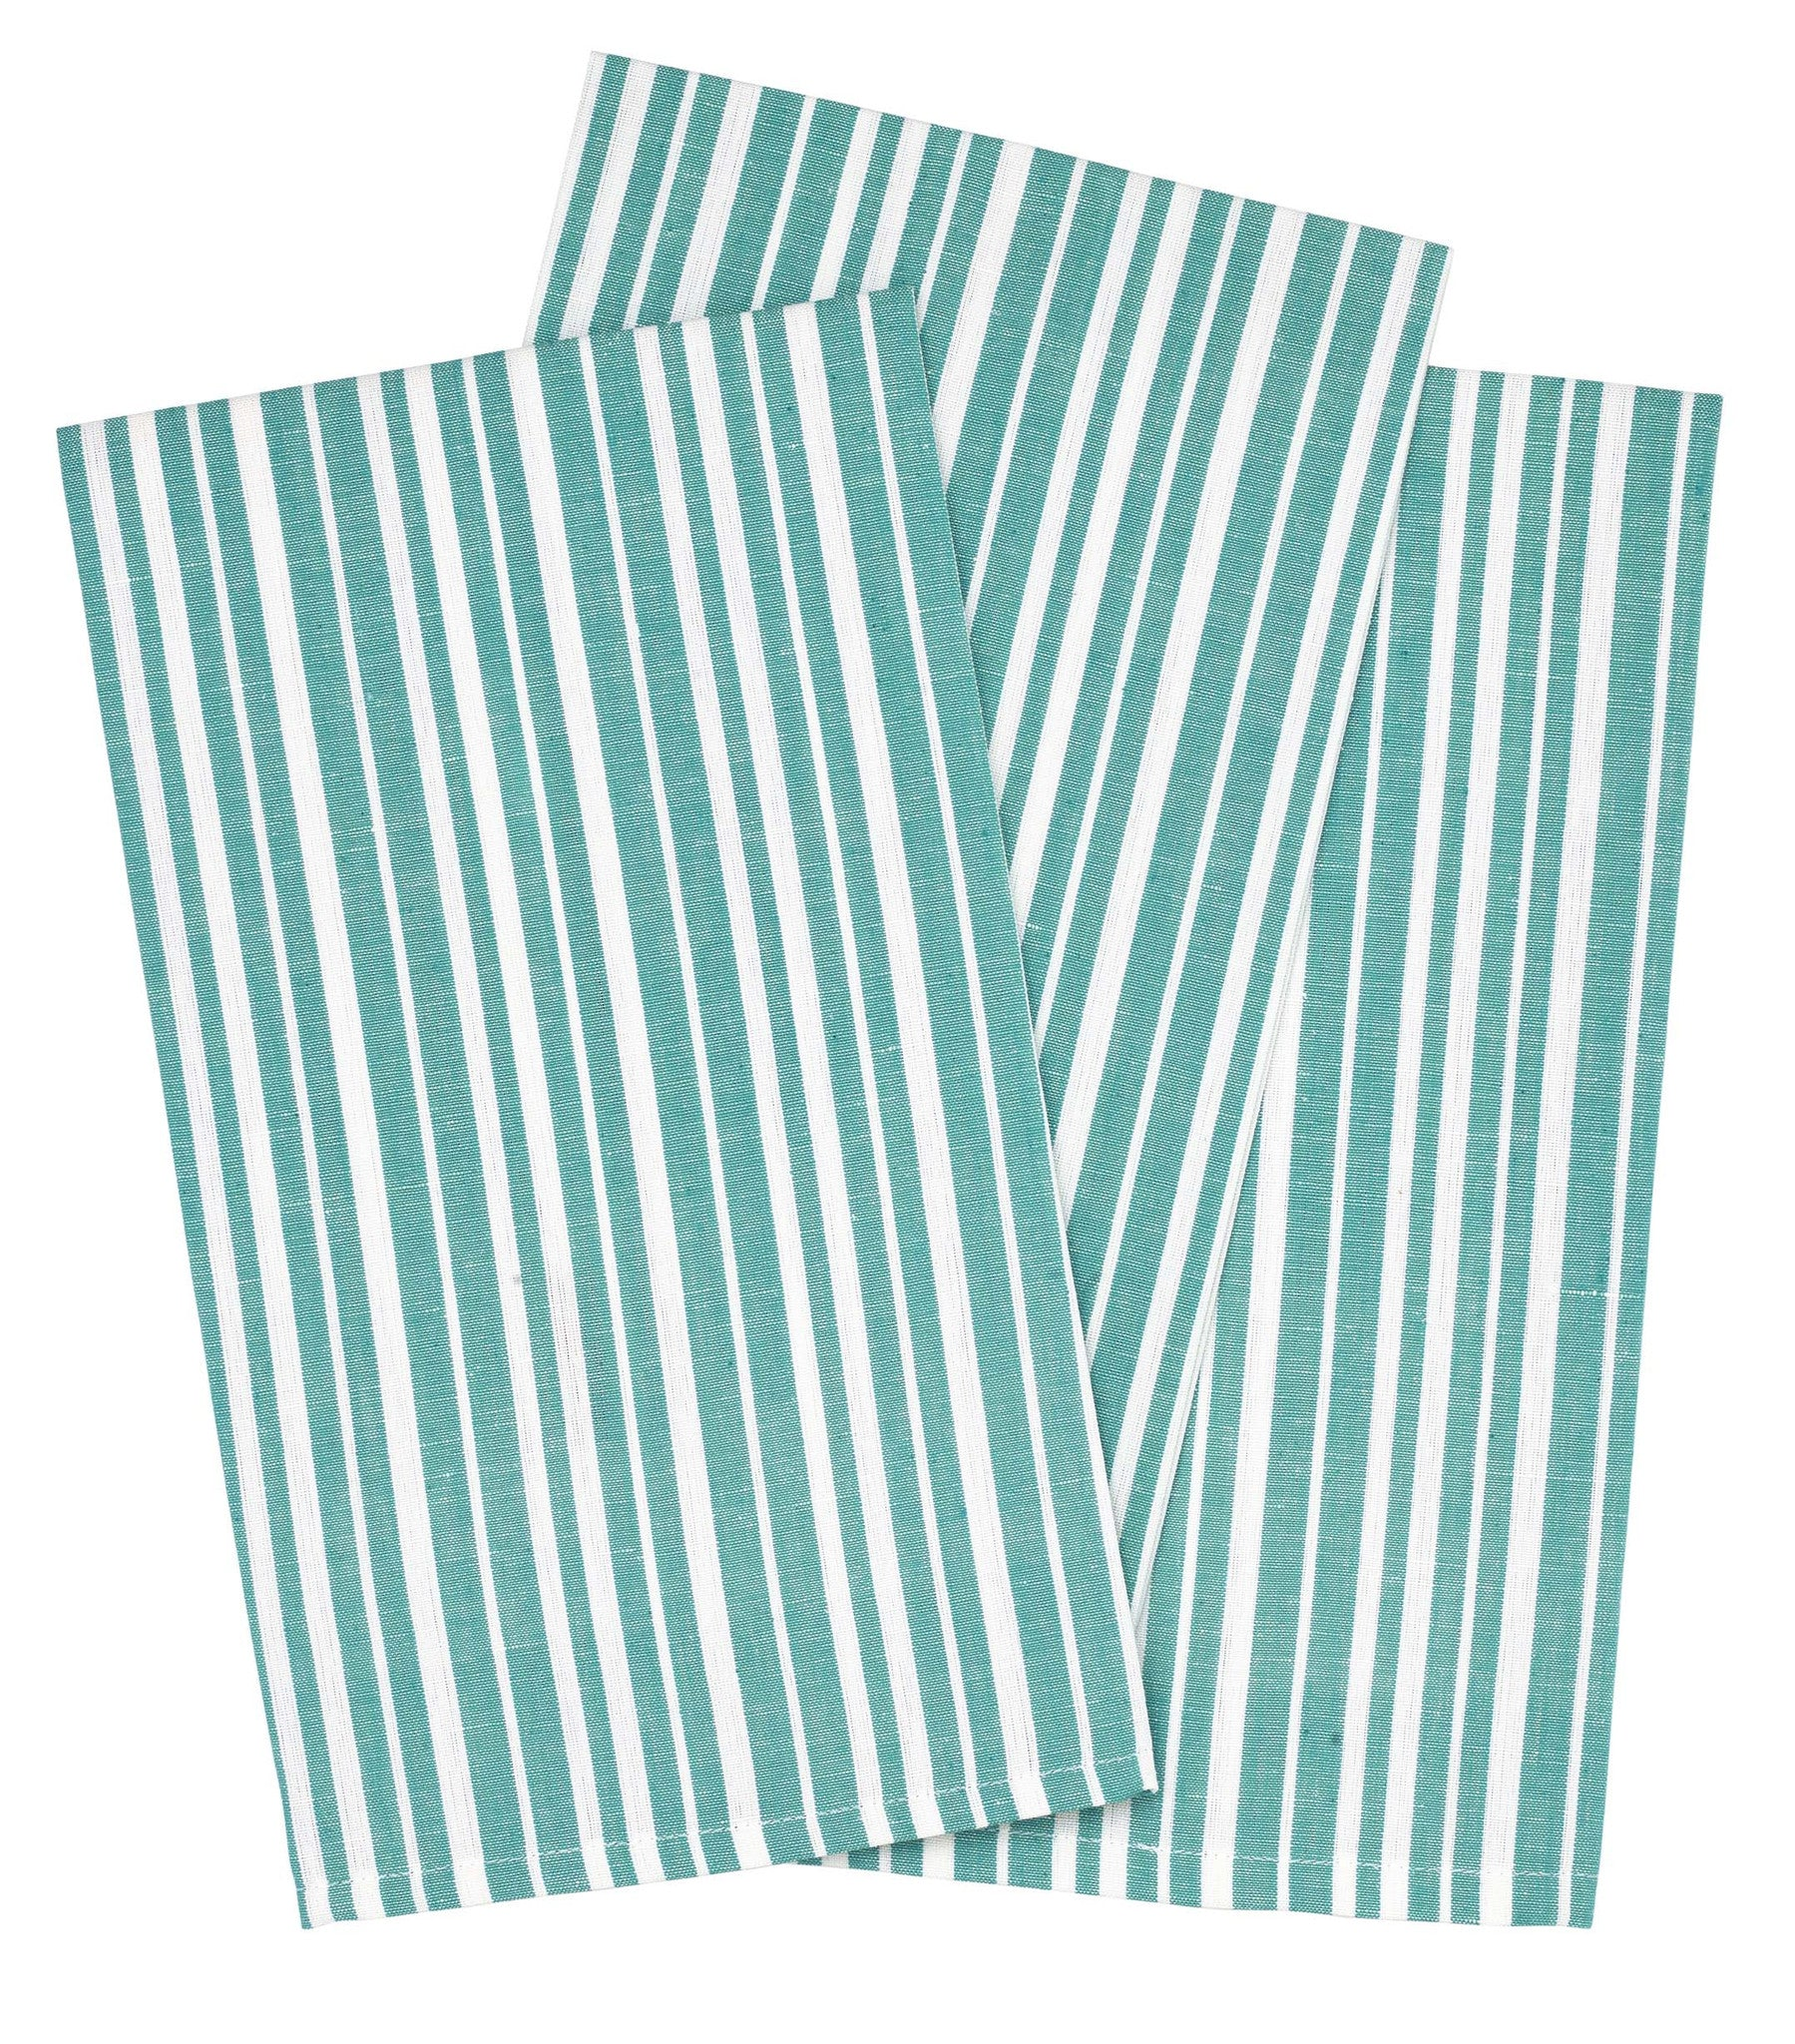 Palermo Stripe Tea Towel - Pacific Blue